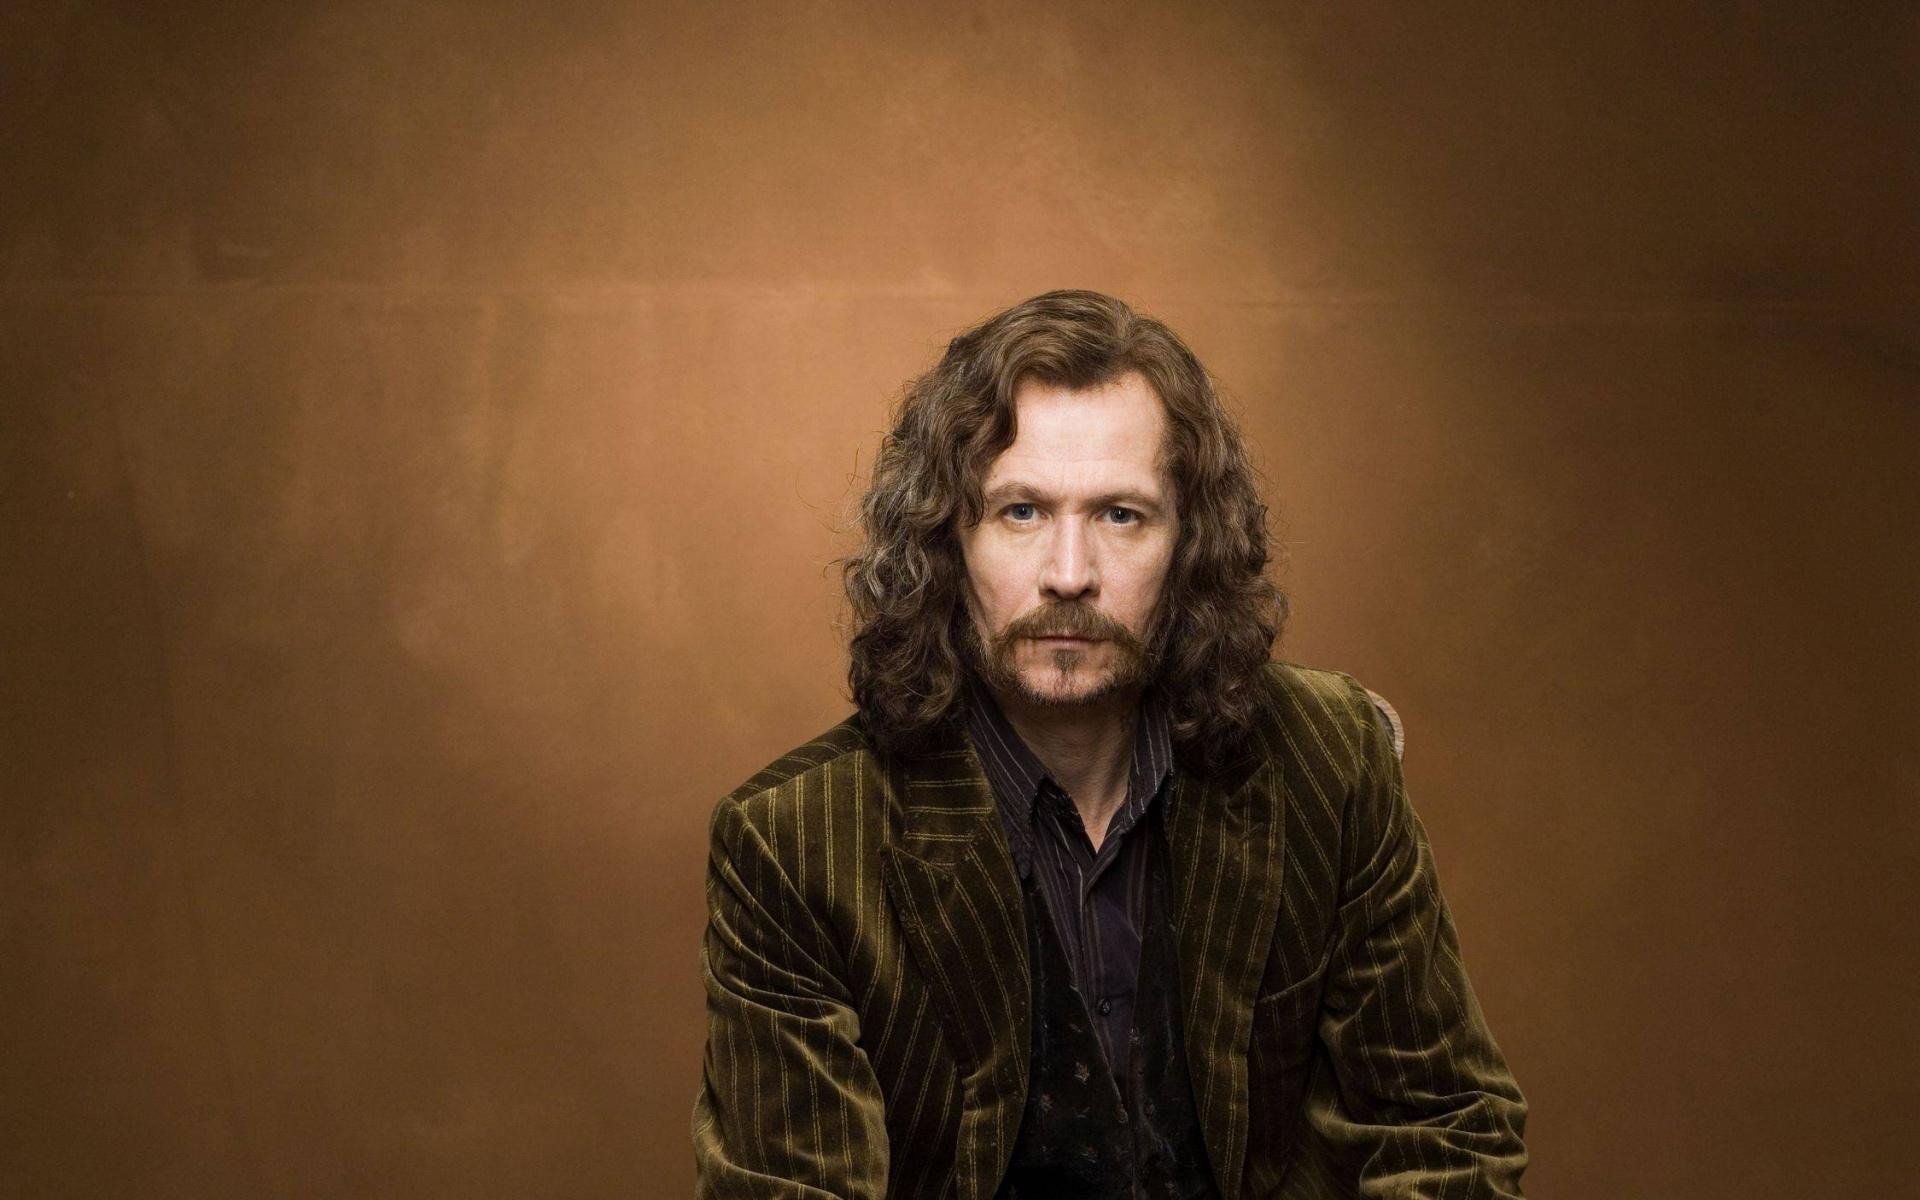 Gary Oldman Hd Wallpapers Download Wallpapers on Jakposttravel 1920x1200